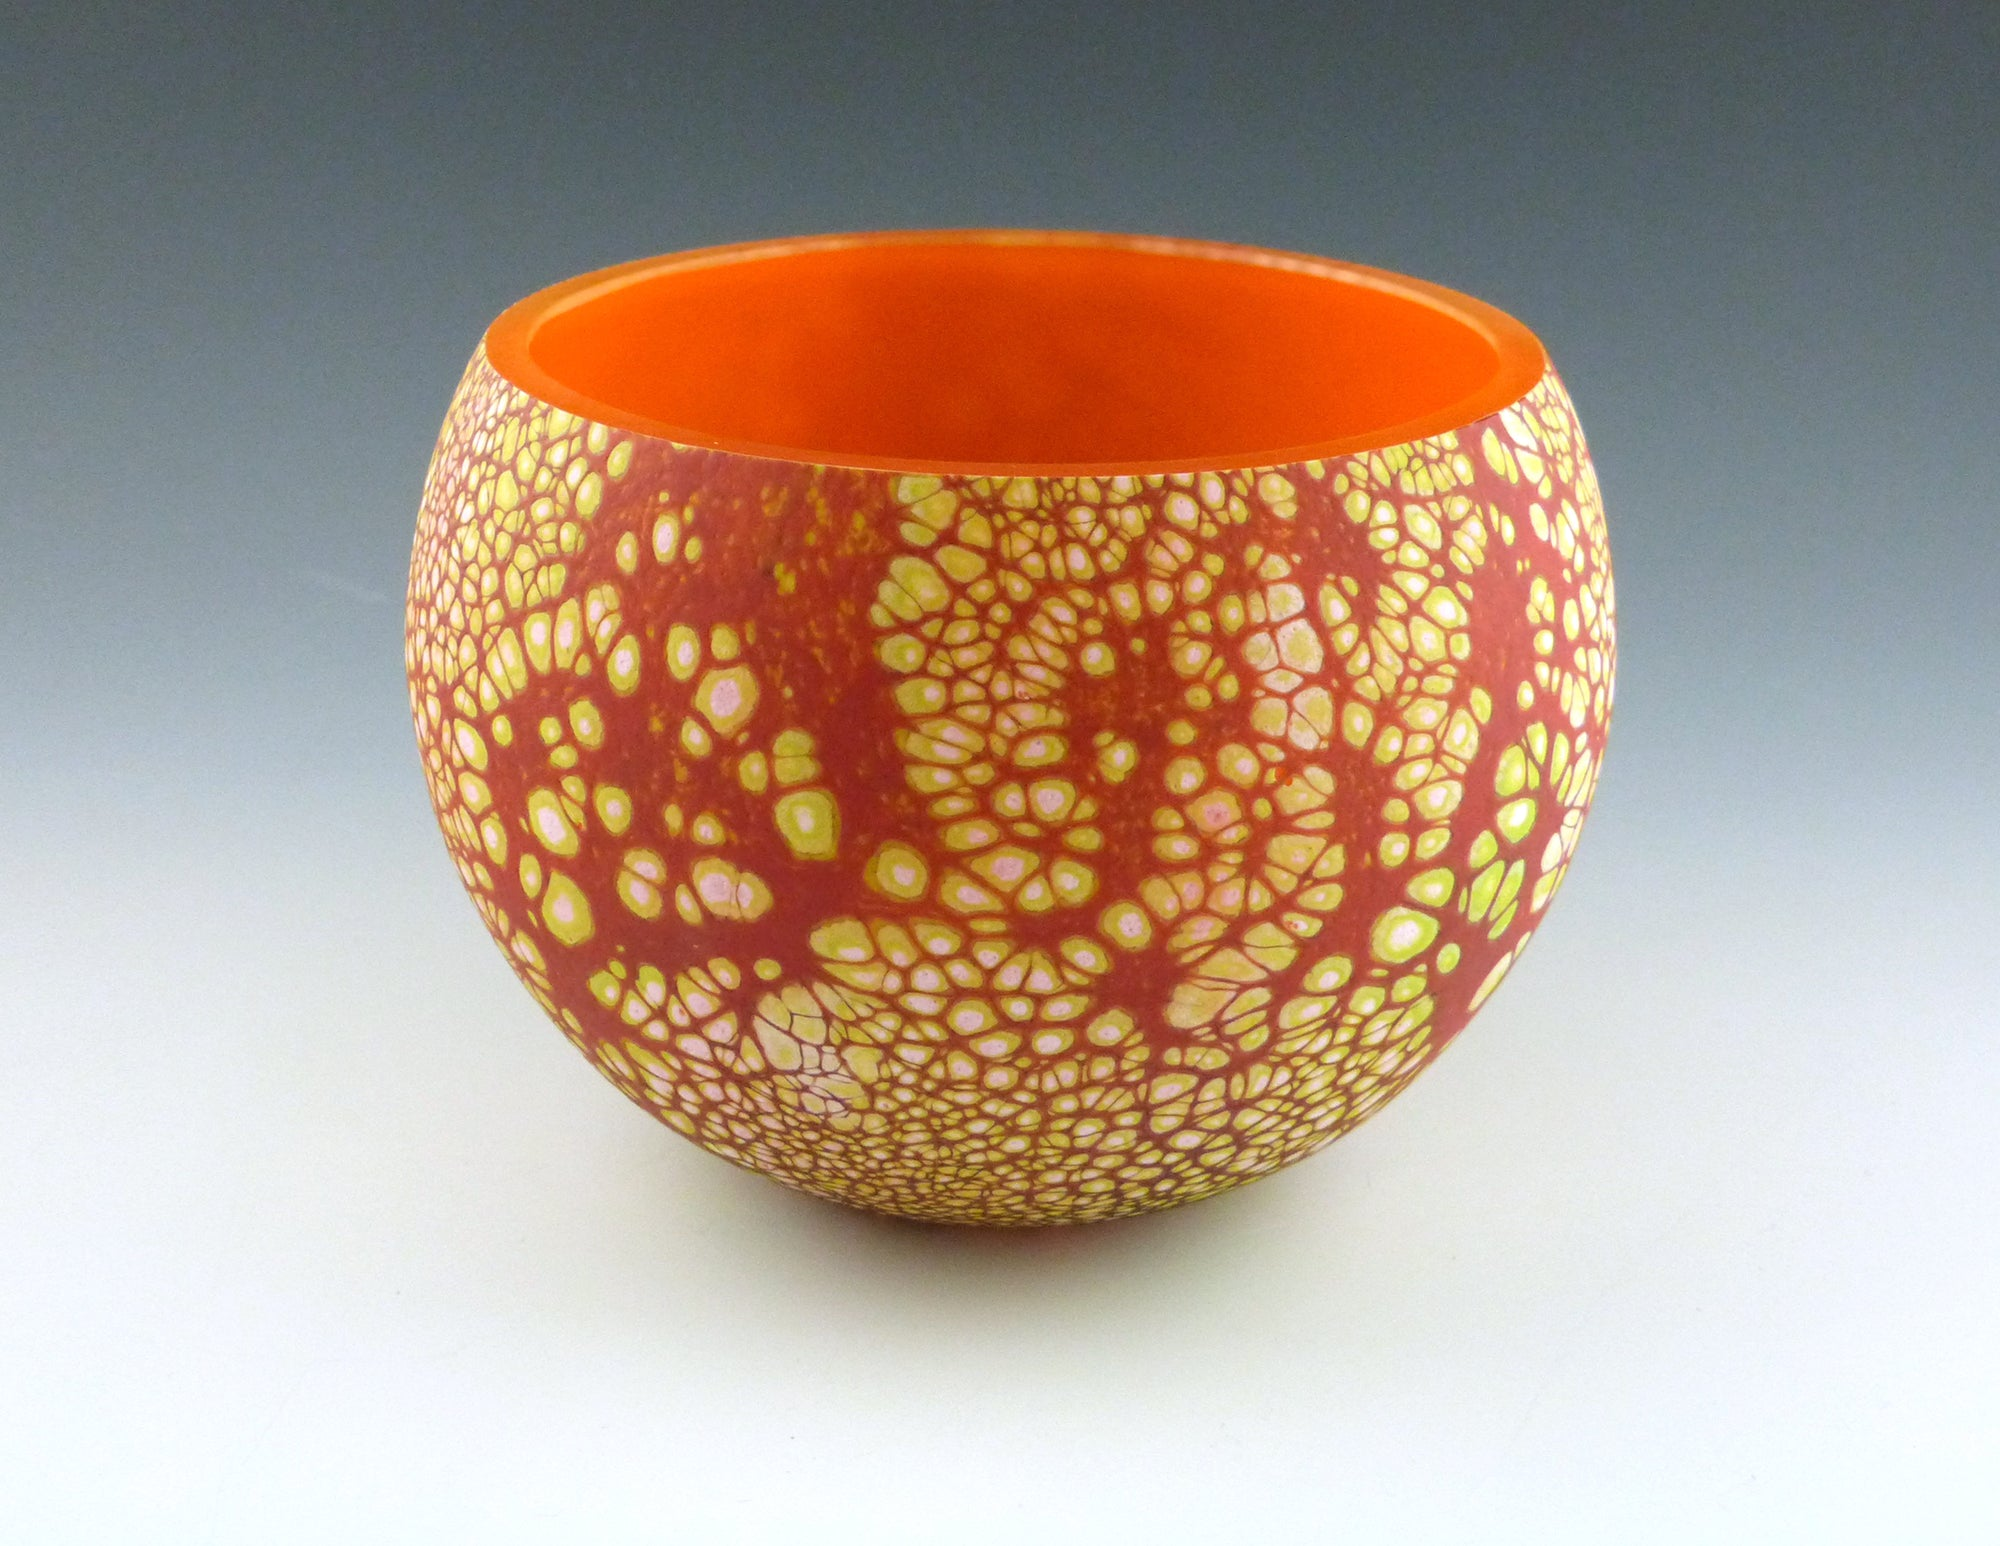 Elemental Bowl, opal/orange/yellow